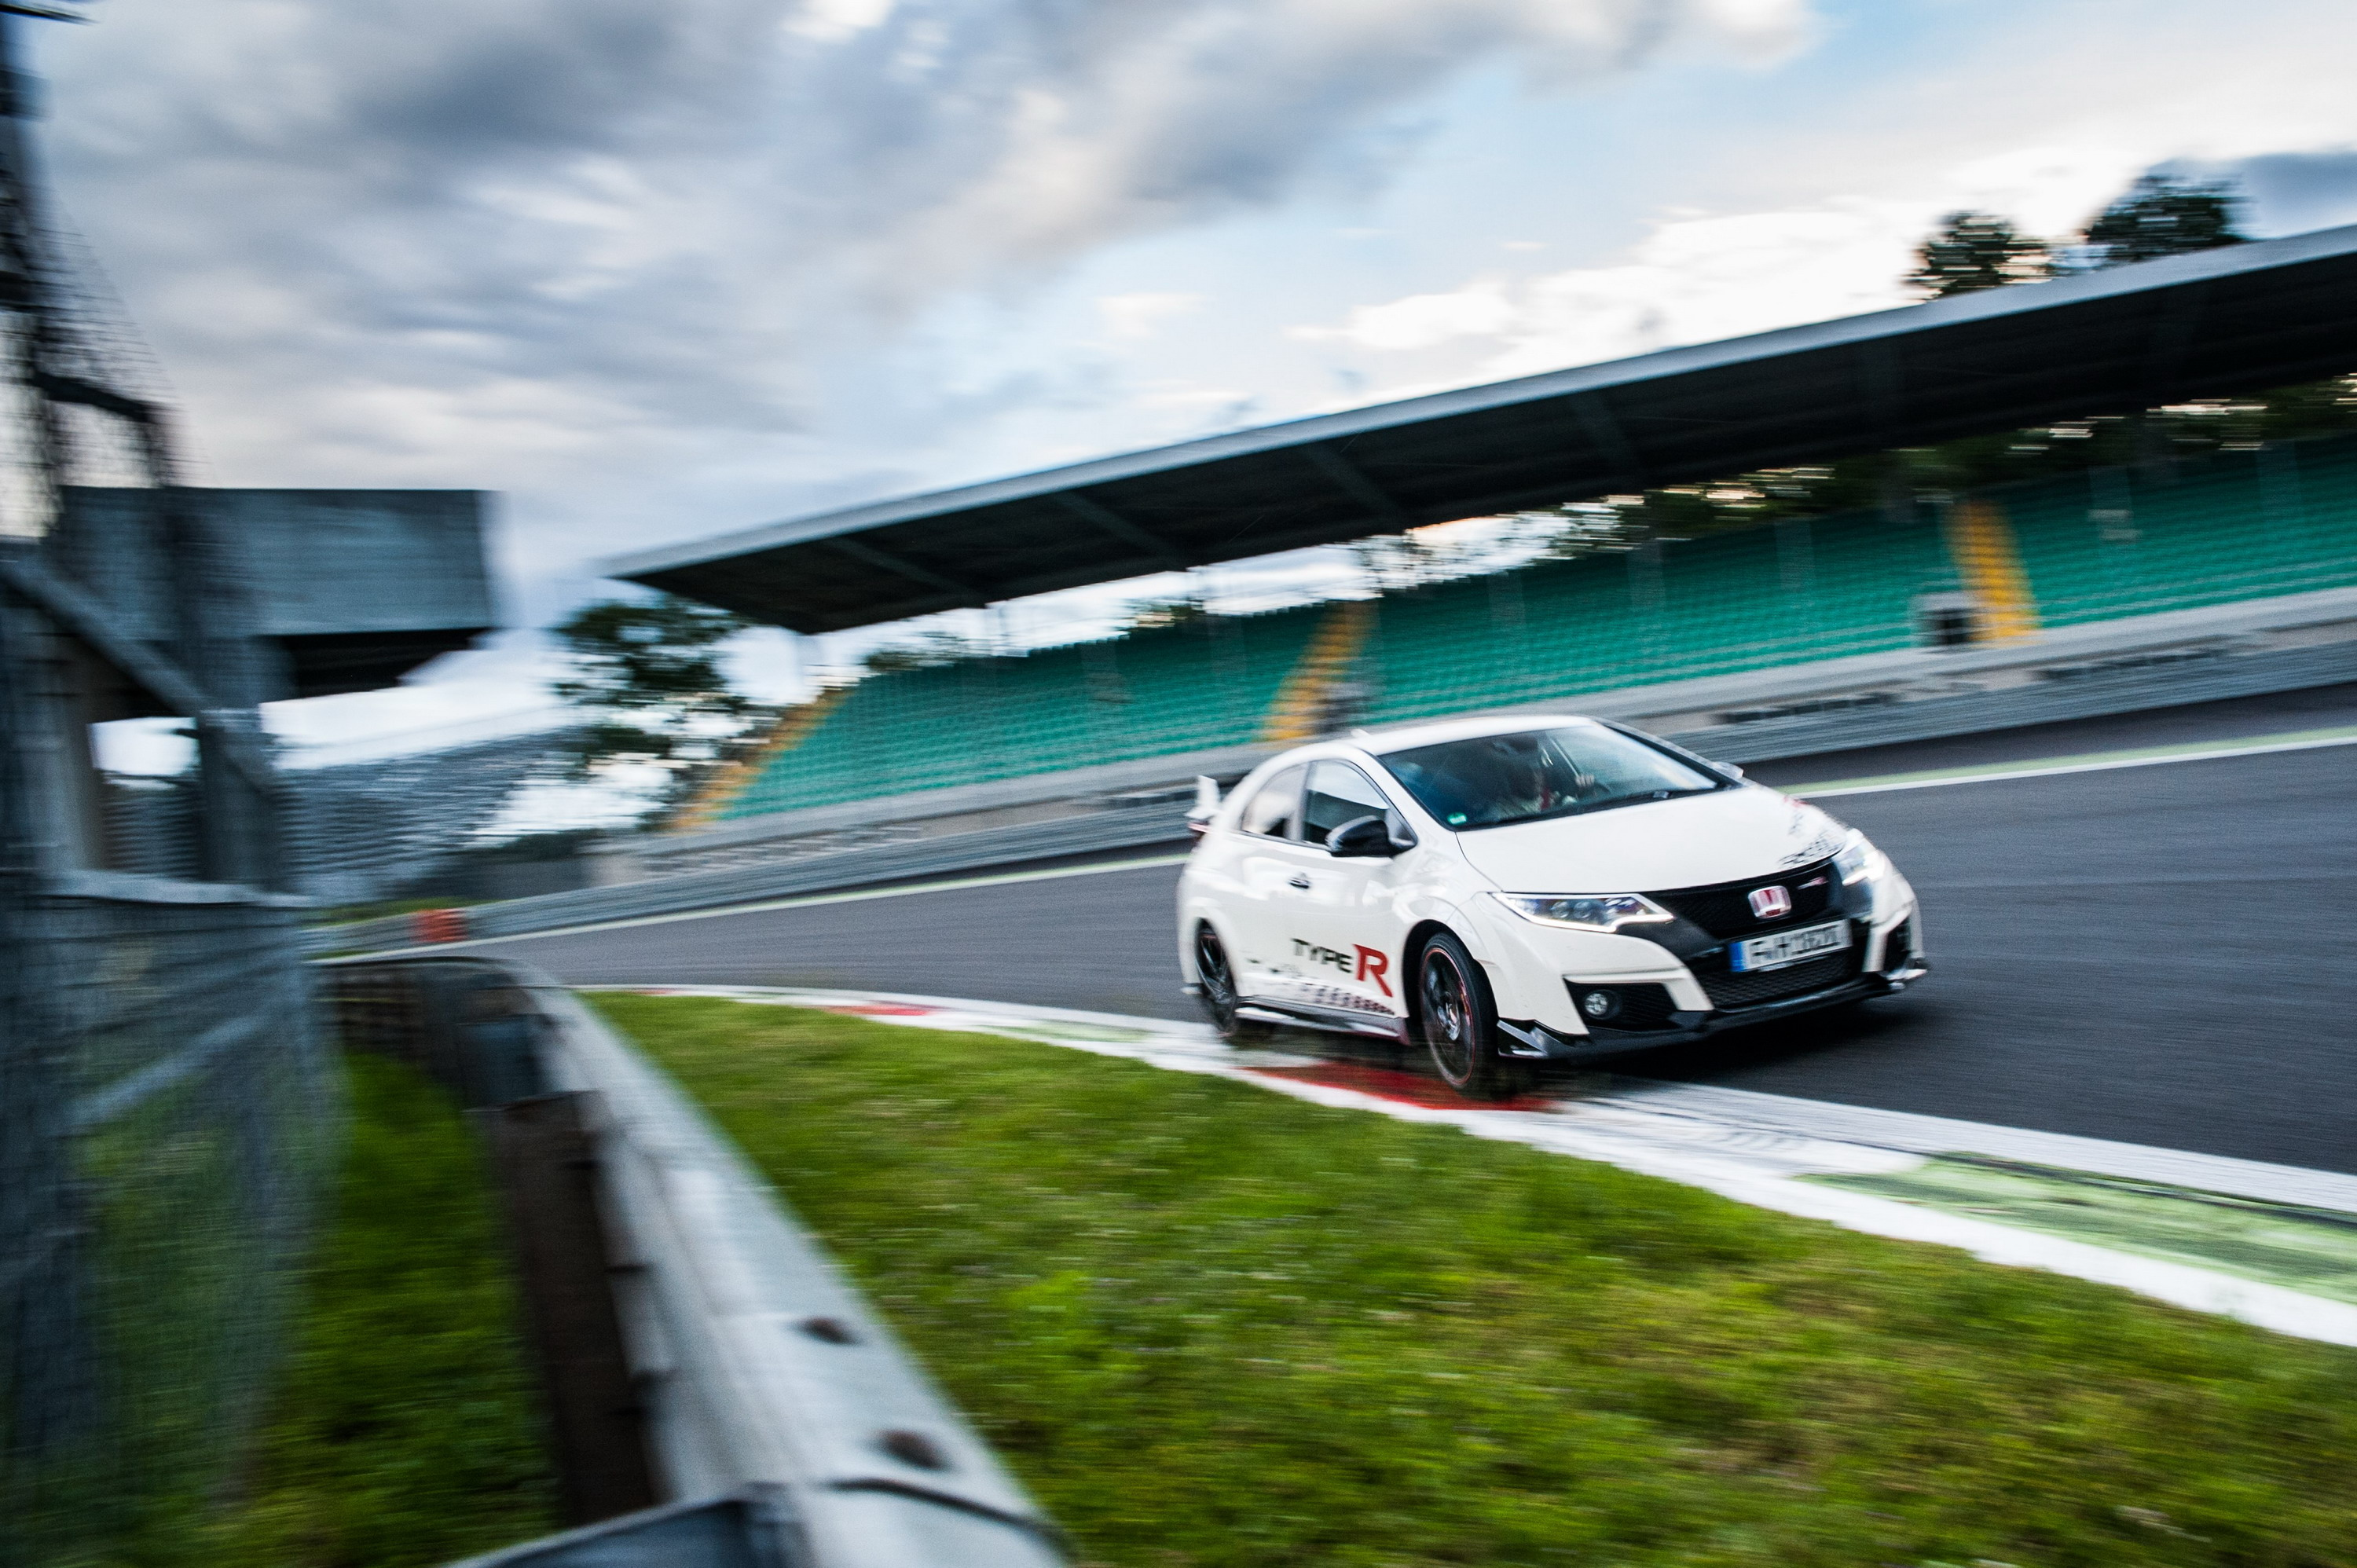 2016 honda civic type r review gallery 679487 top speed for Honda civic type r top speed